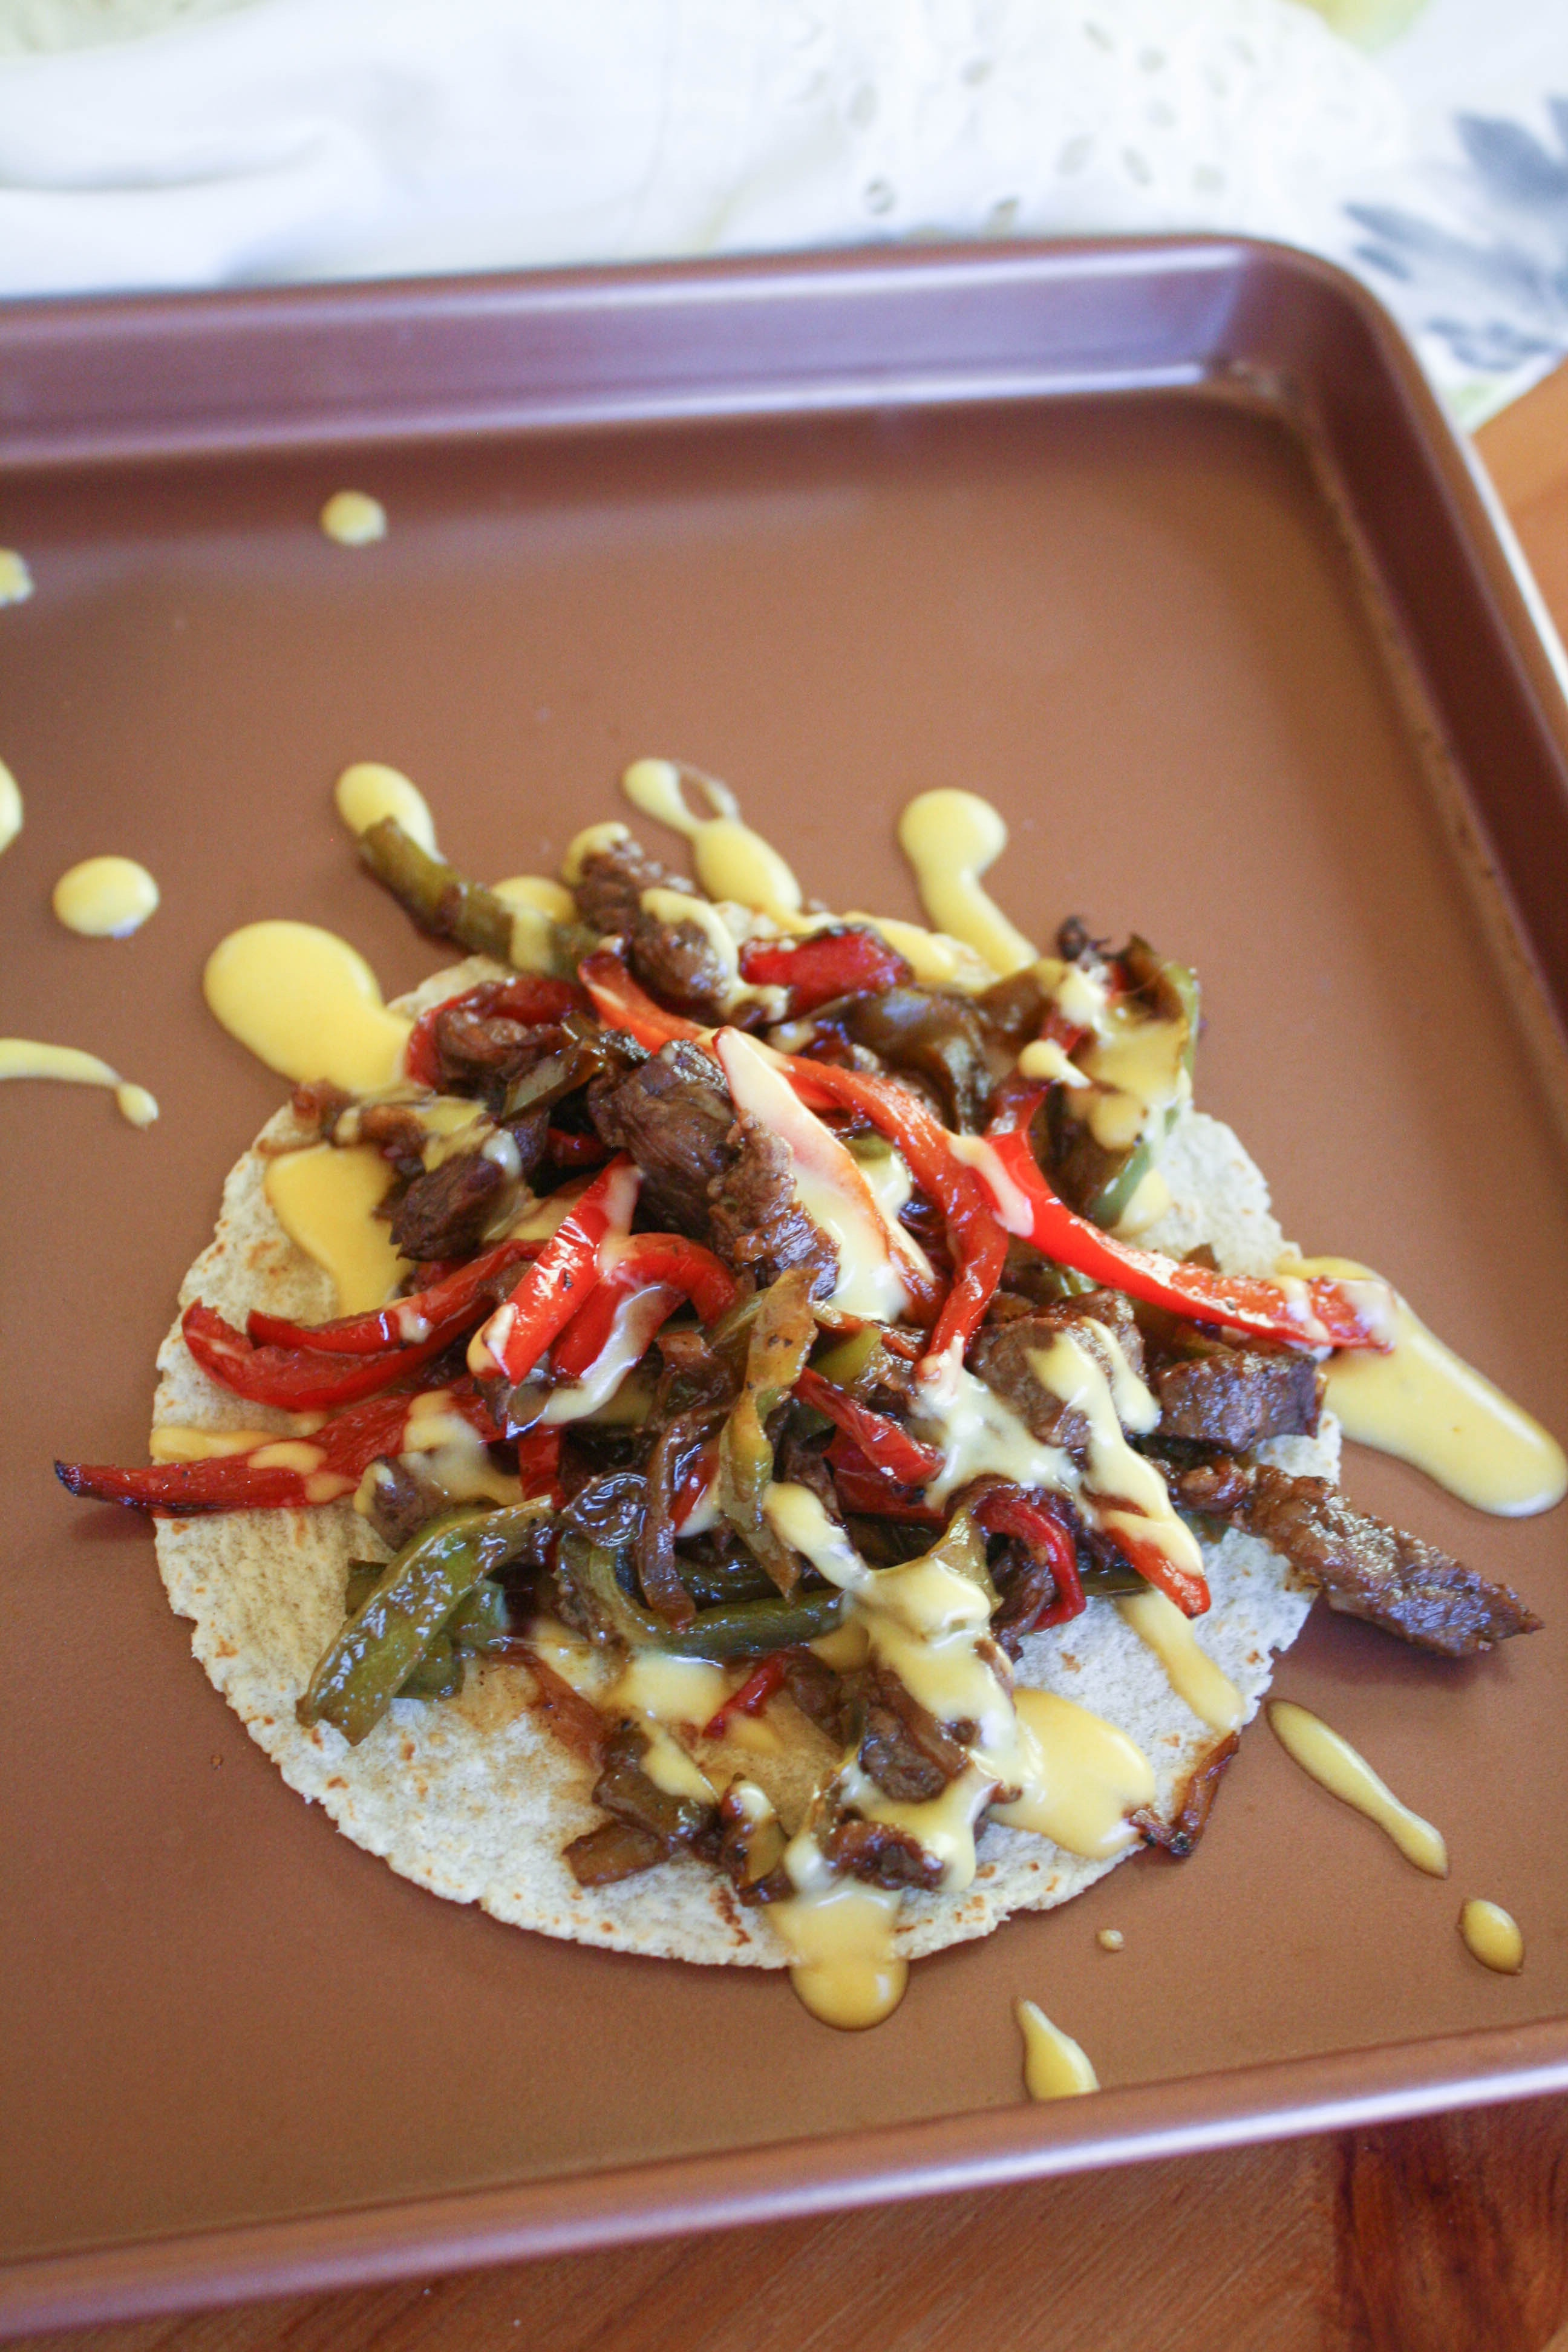 Philly Cheesesteak Tostadas are a fun mealtime dish! Philly Cheesesteak Tostadas are fun and easy to put together.